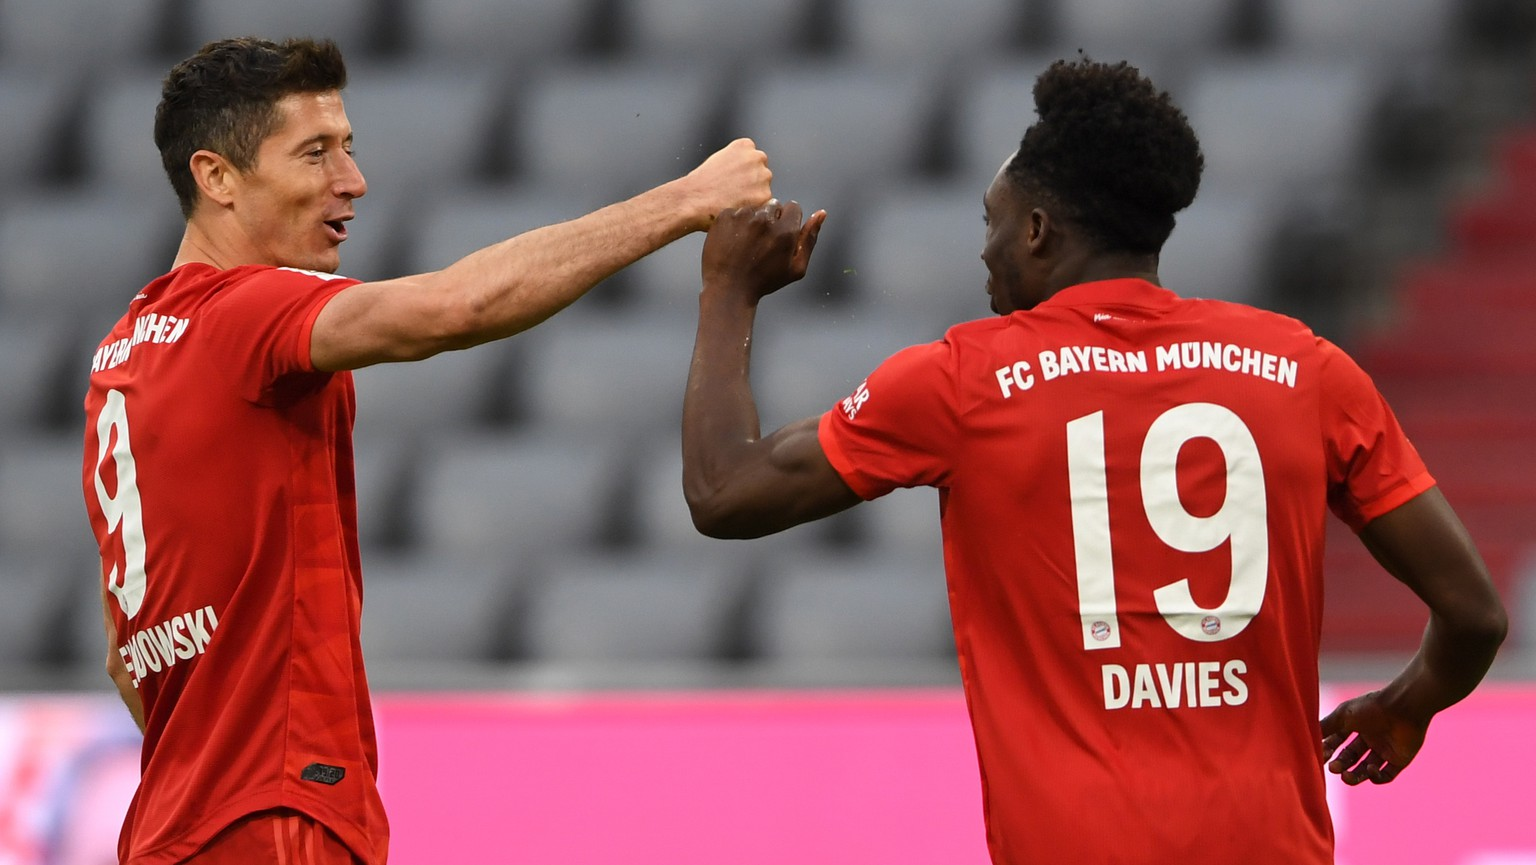 epa08454683 Bayern Munich's Polish forward Robert Lewandowski (L) and Bayern Munich's Canadian midfielder Alphonso Davies celebrate the 5-0 during the German Bundesliga soccer match between FC Bayern Munich and Fortuna Duesseldorf at the Allianz Arena stadium in Munich, southern Germany, 30 May 2020.  EPA/CHRISTOF STACHE / POOL CONDITIONS - ATTENTION:  The DFL regulations prohibit any use of photographs as image sequences and/or quasi-video.